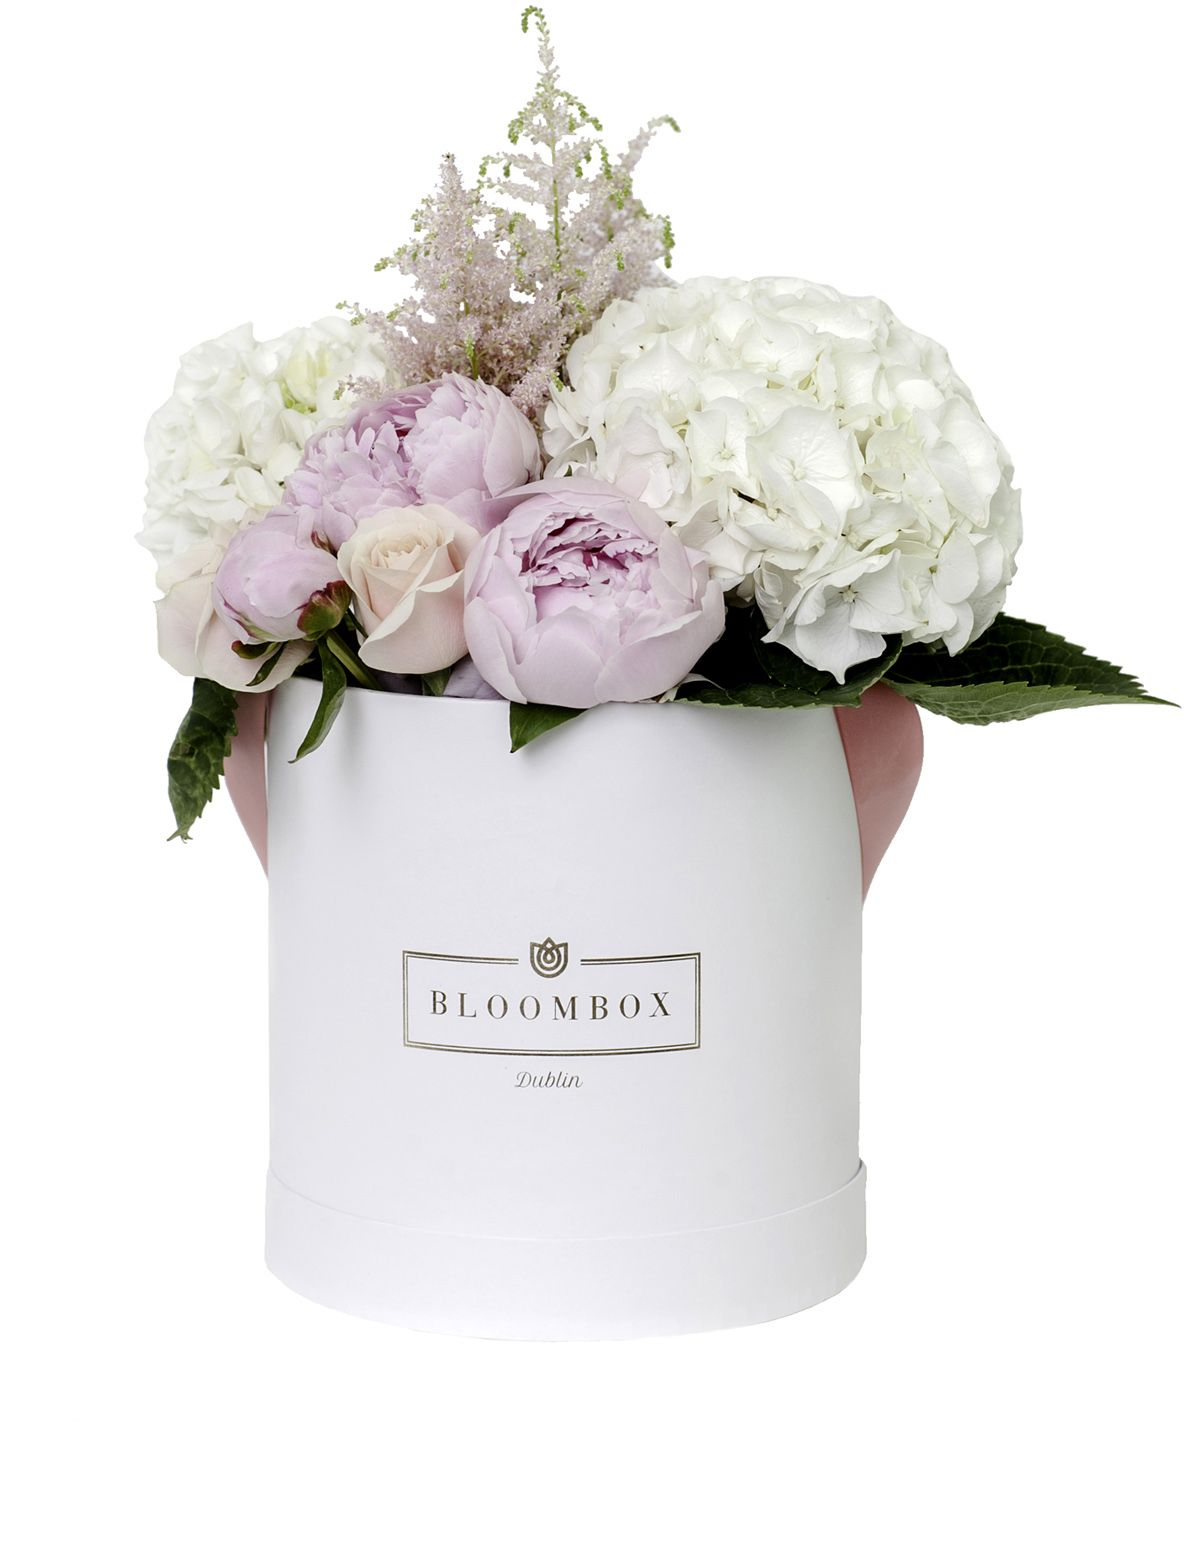 Vanity Daydream Bloombox Dublins First Luxury Flower Delivery